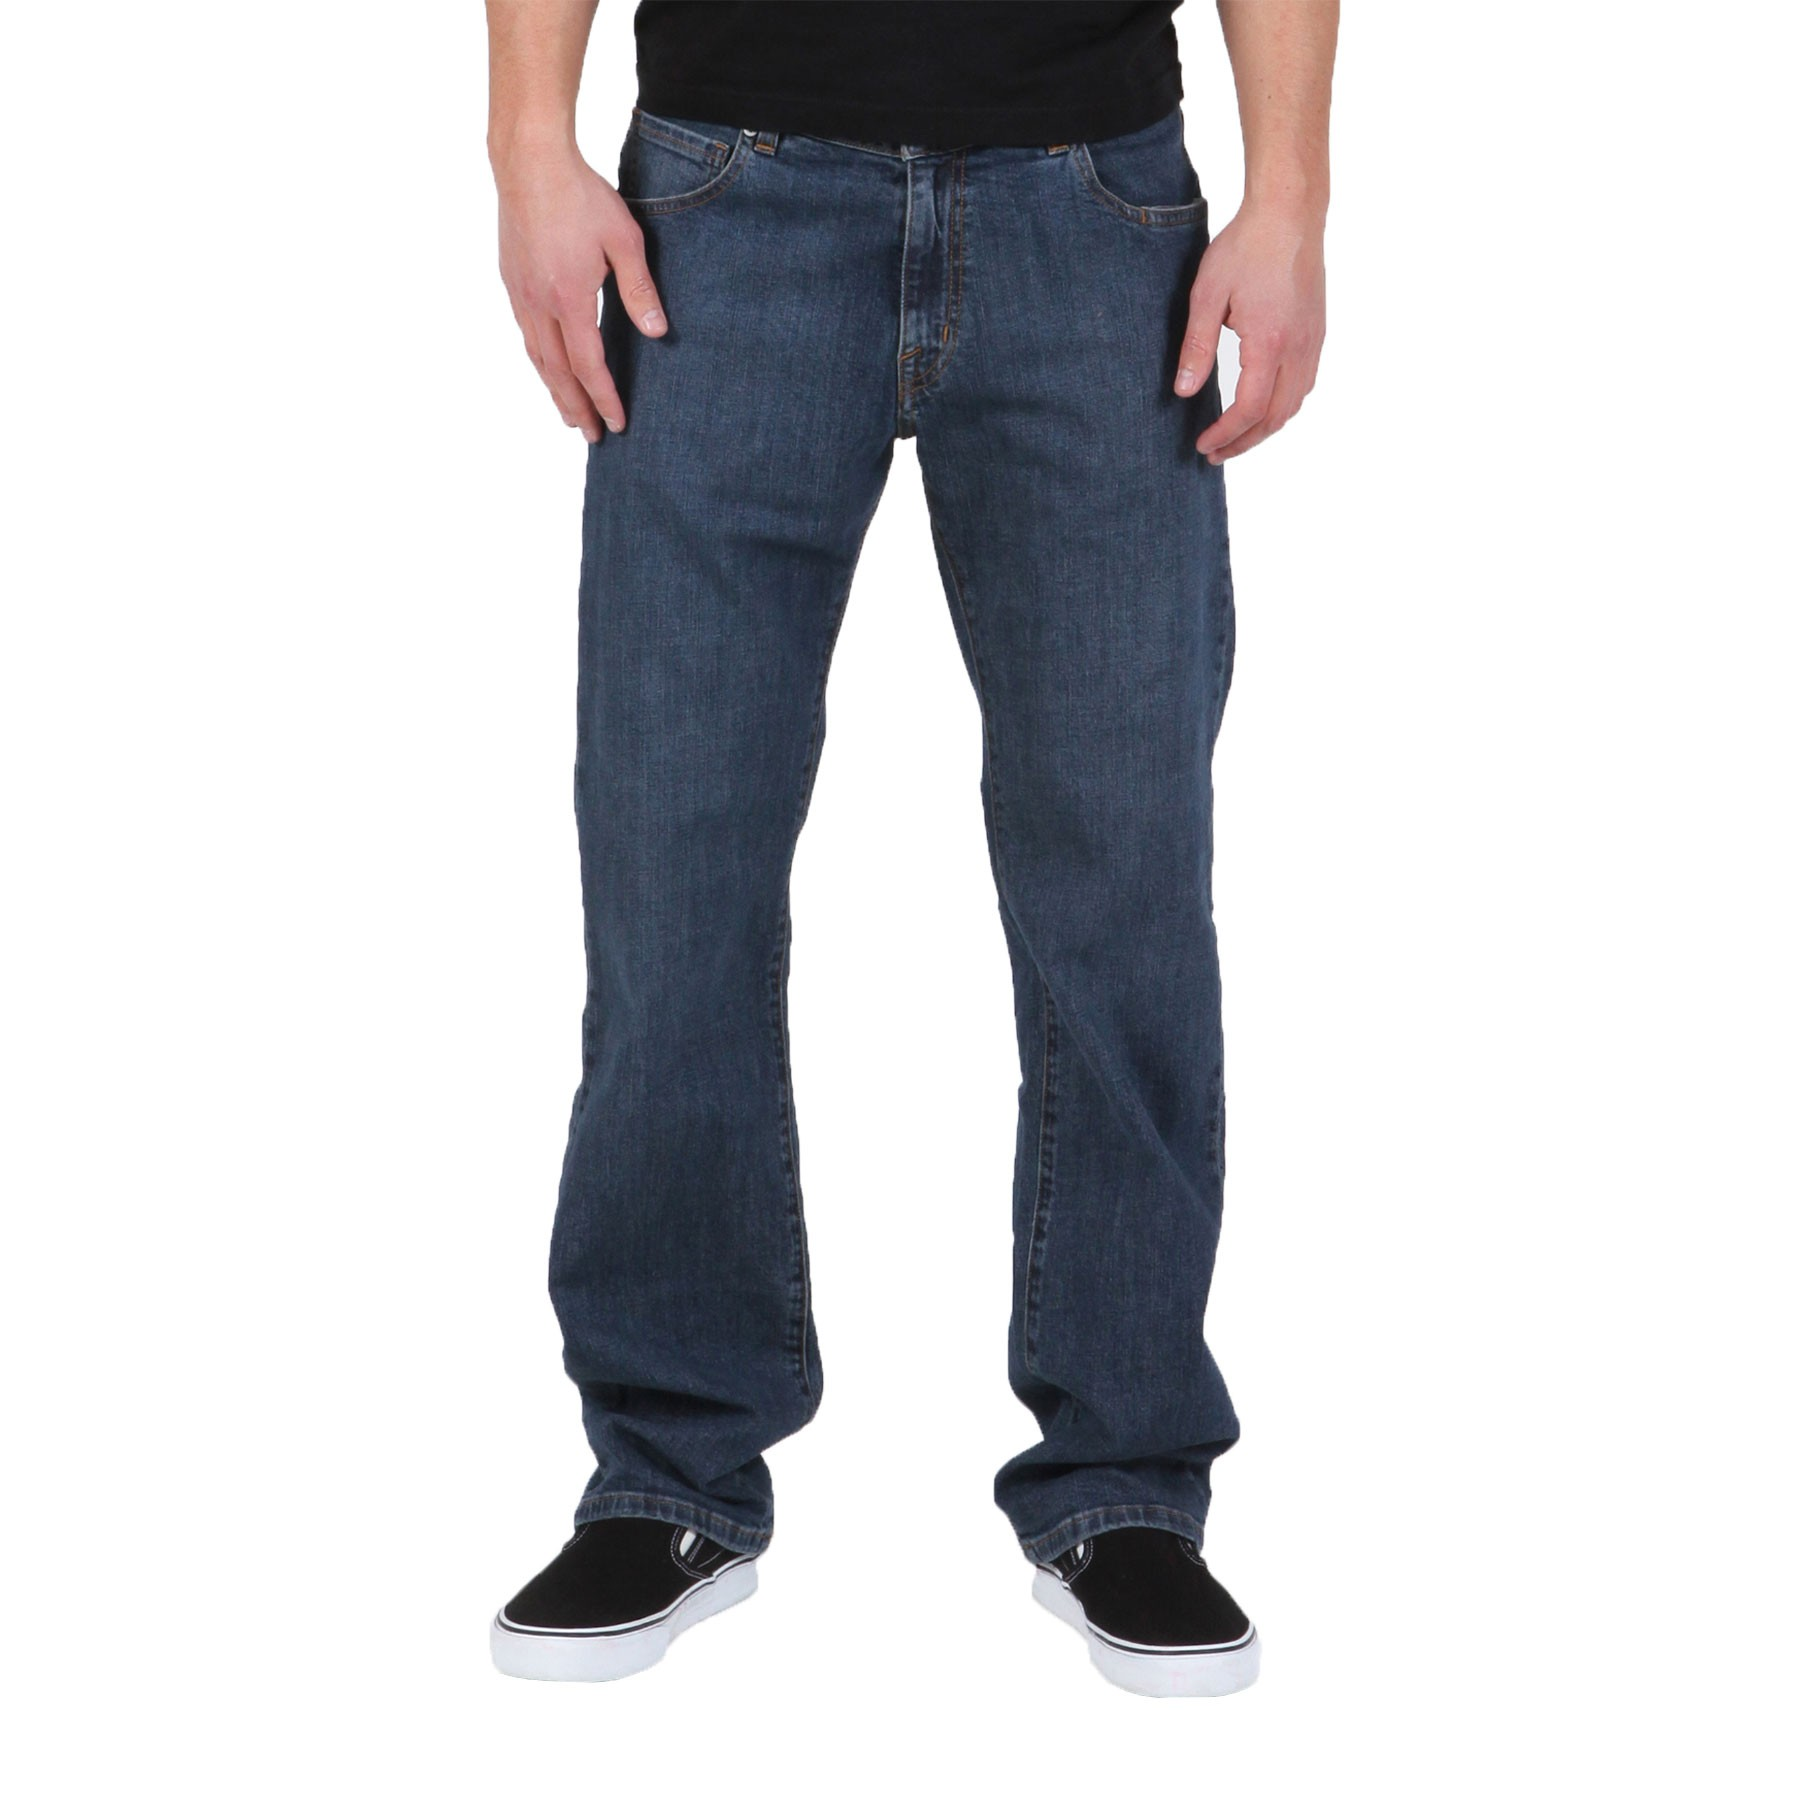 Volcom Kinkade Jeans - High Times Blue - 34 Length